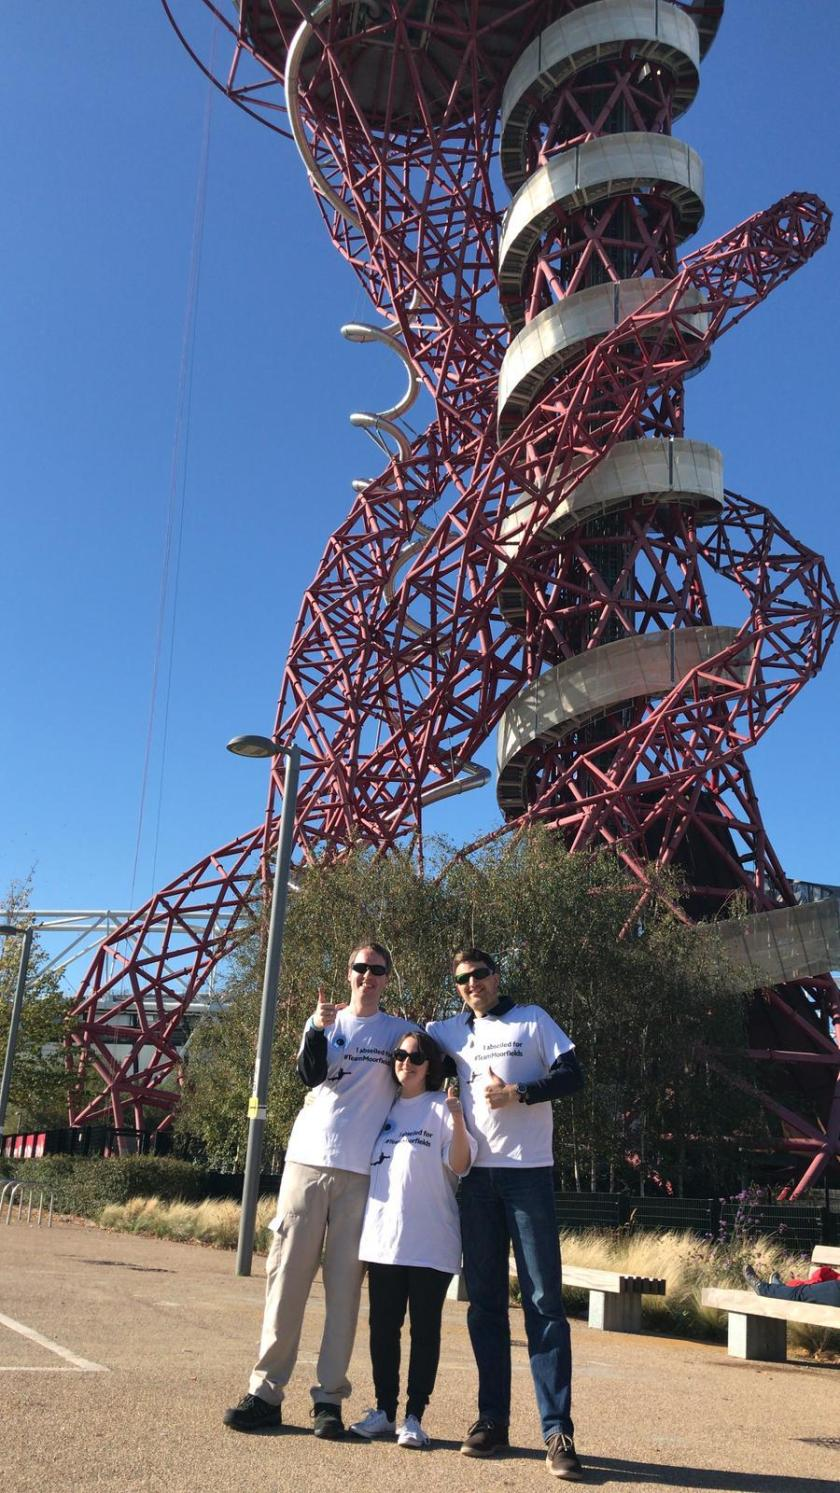 Glen, Claire and Vicky smiling and giving a thumbs up, as the Orbit Tower stands high over them in the background.